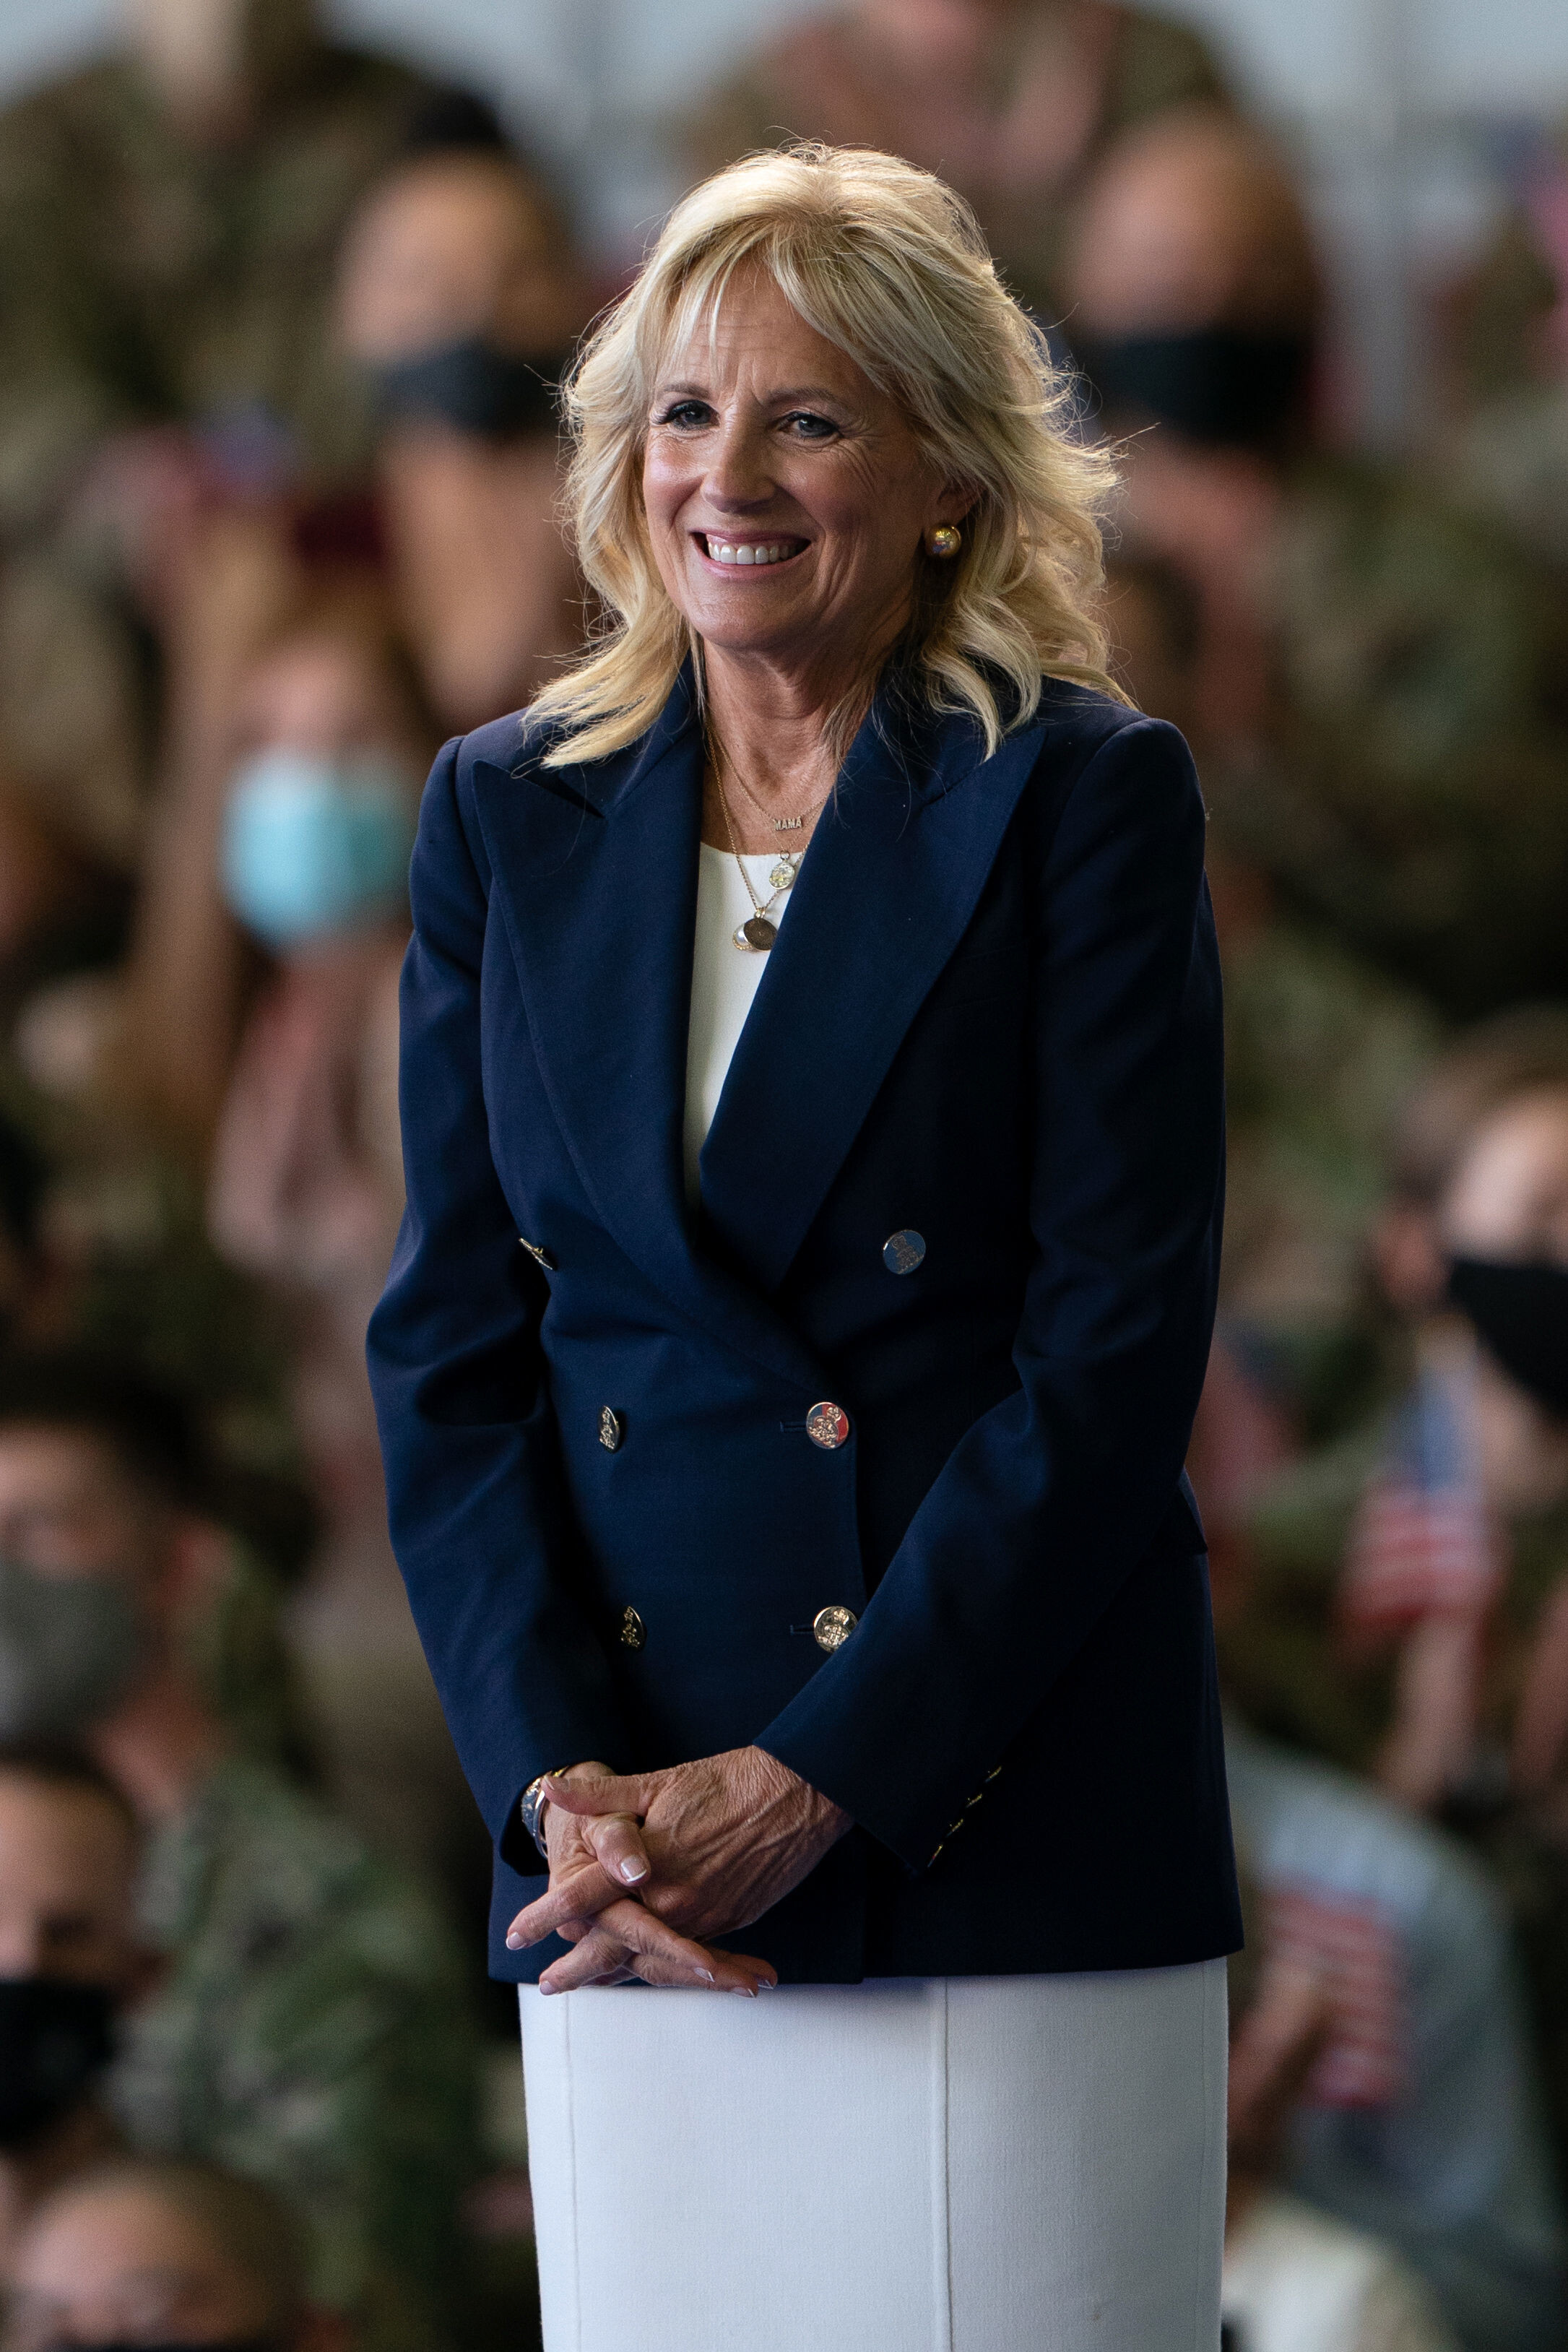 Jill Biden speaks candidly about being a first lady: 'Nothing can prepare you'